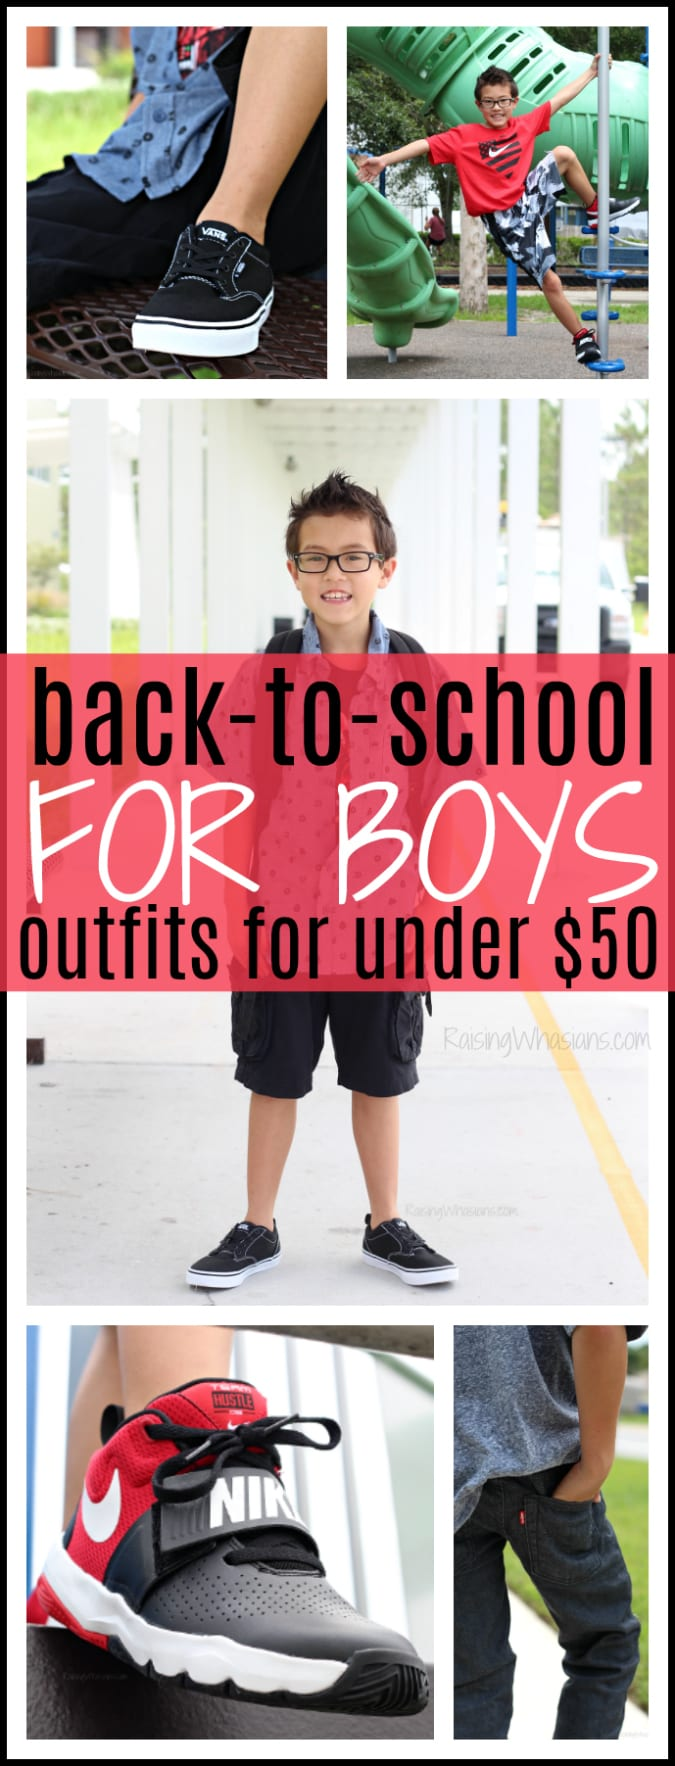 68005fdce92a 3 Boys Back to School Outfits for Under  50 + Kohl s Coupon ...